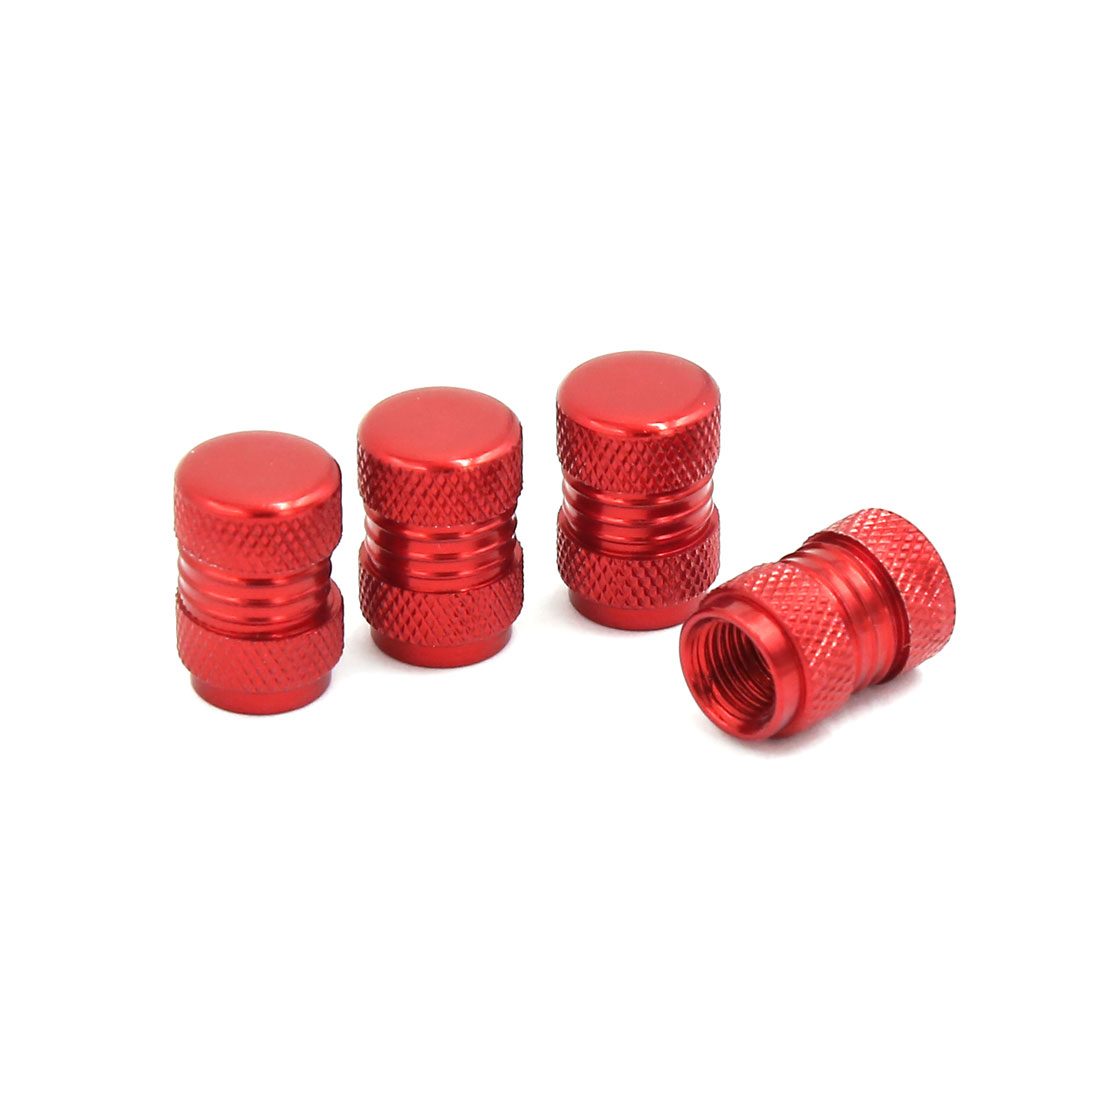 4pcs Red Aluminum Thread Hole Diameter 9mm Tire Tyre Stem Caps for Cars